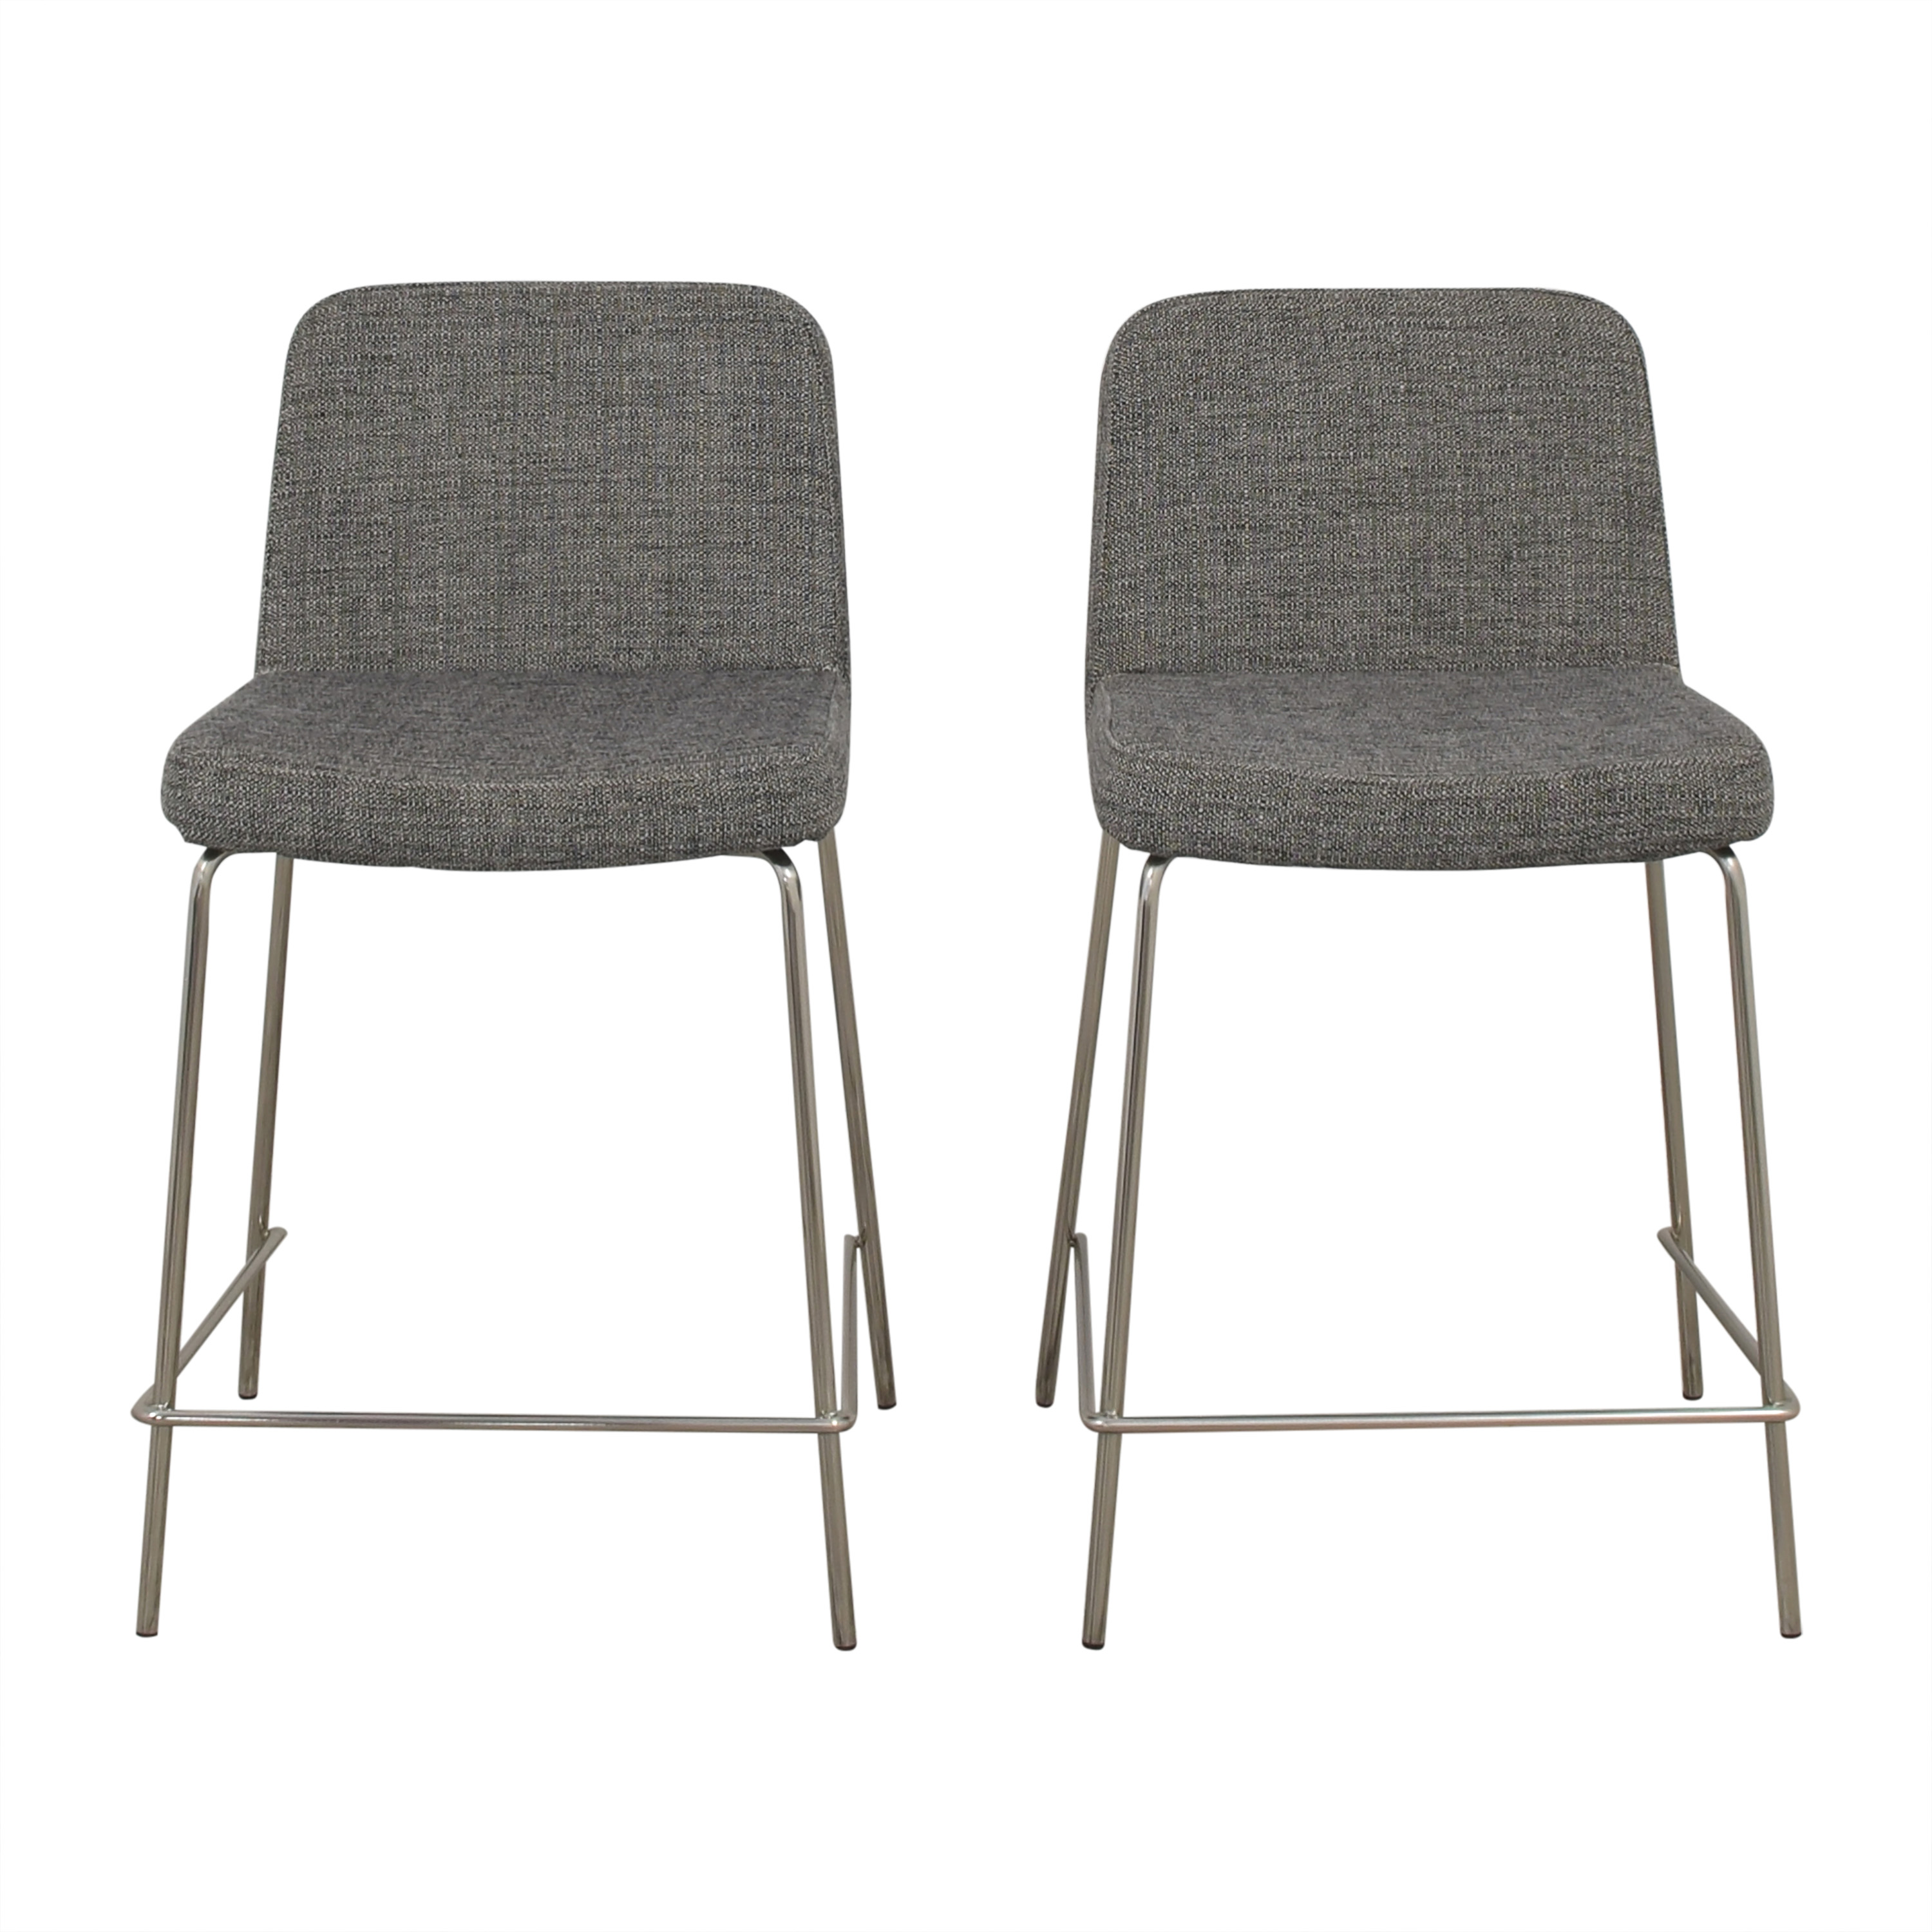 CB2 Charlie Counter Stools / Chairs